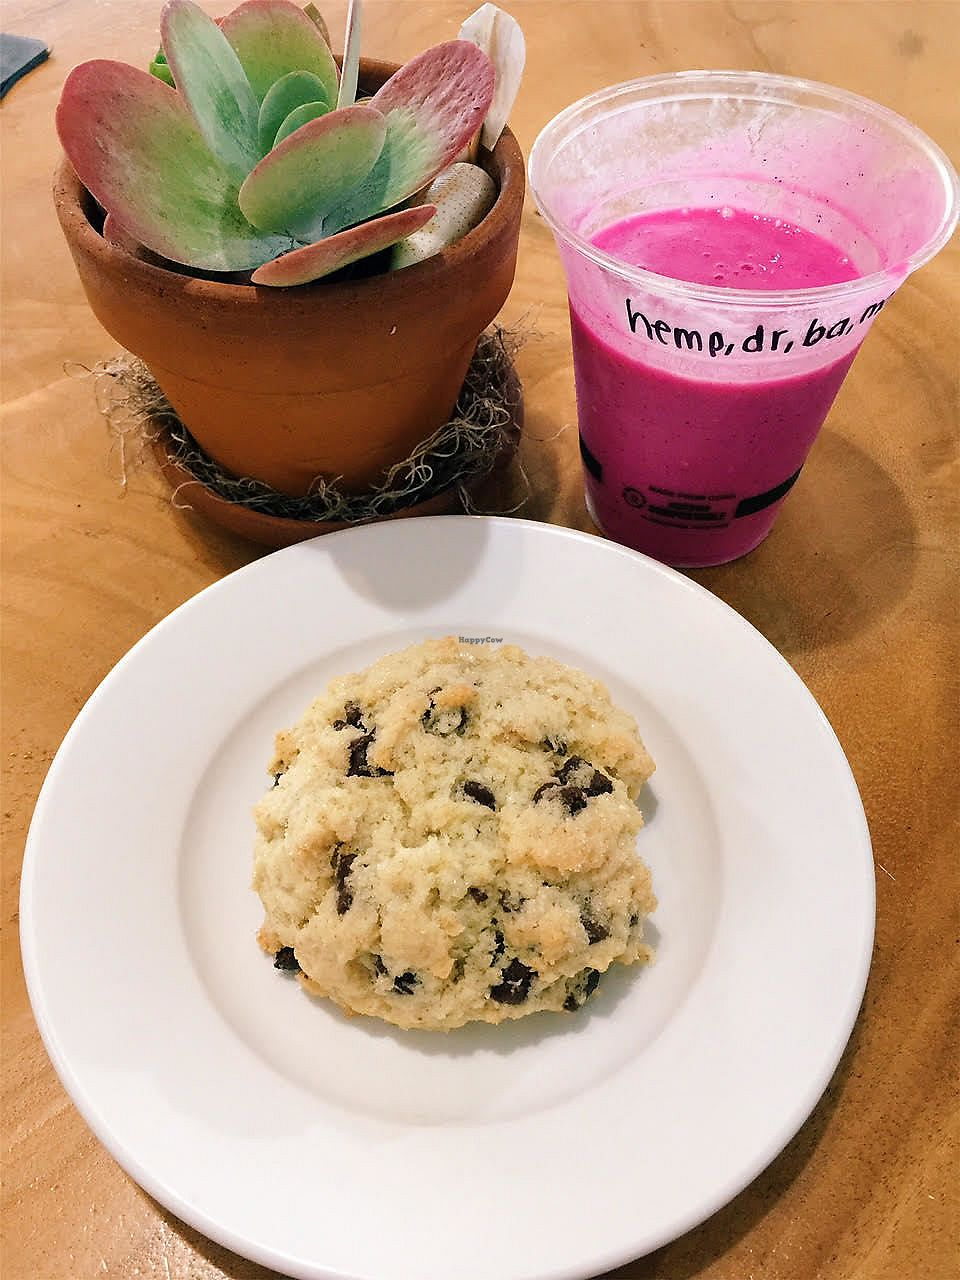 """Photo of Kaya's  by <a href=""""/members/profile/Stephaneen"""">Stephaneen</a> <br/>chocolate chip scone with smoothie <br/> March 21, 2018  - <a href='/contact/abuse/image/60021/373531'>Report</a>"""